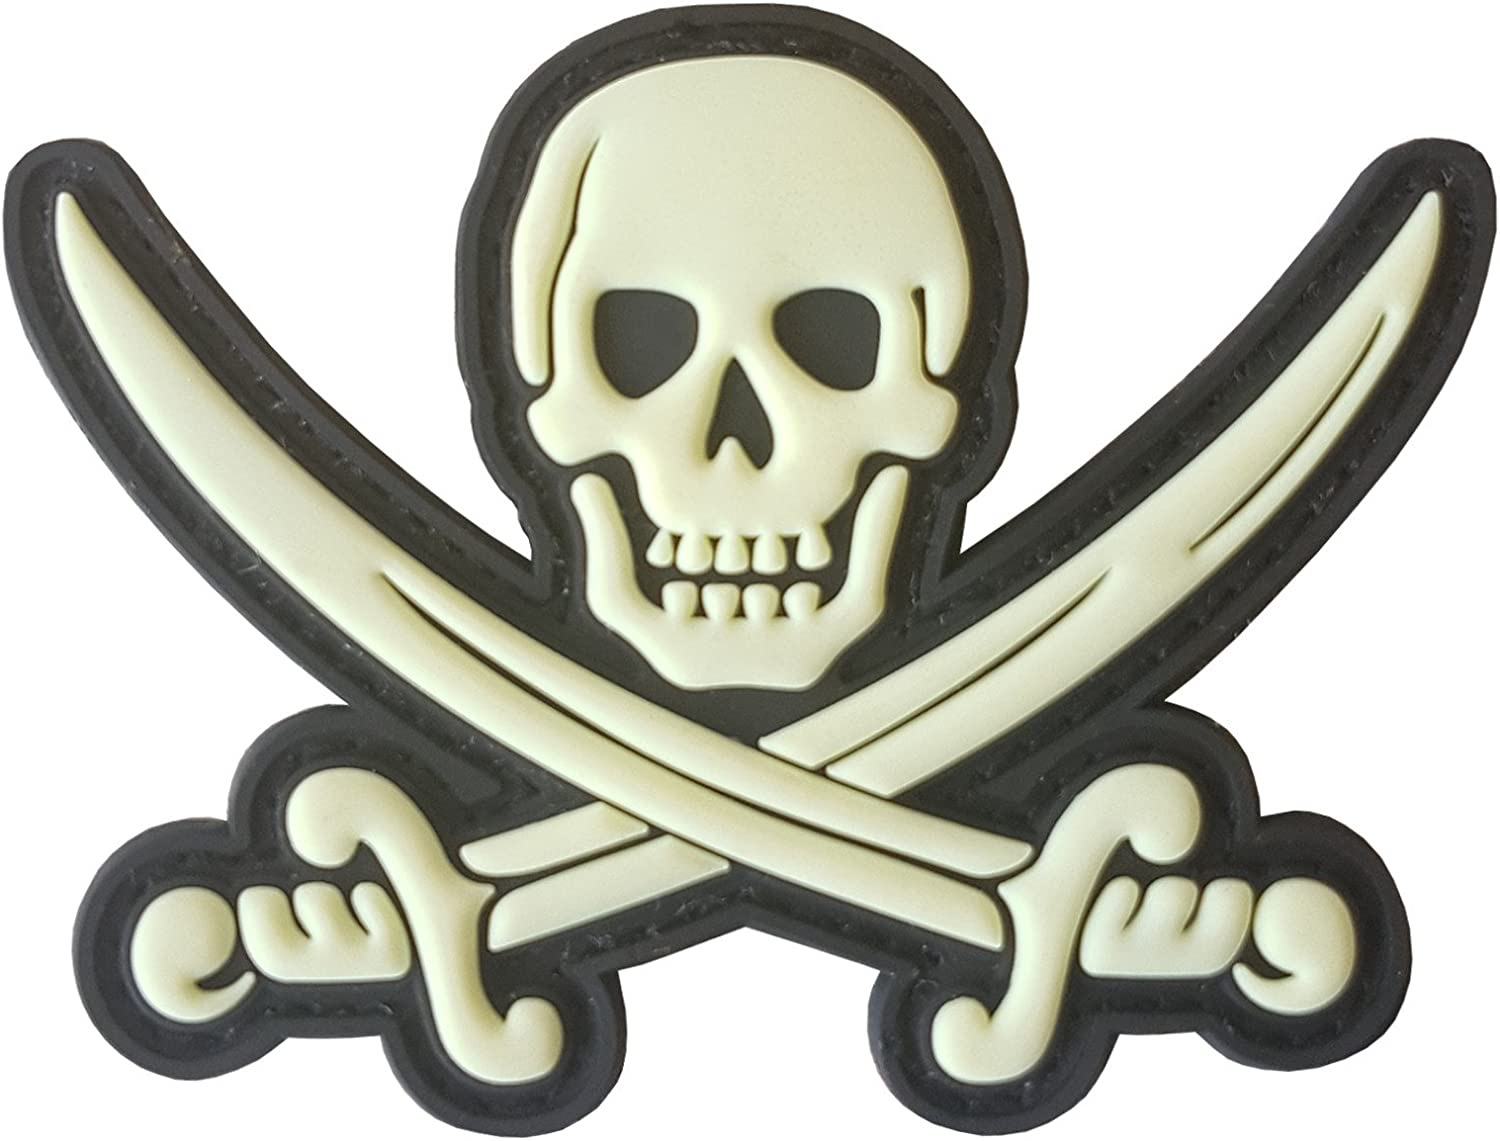 Year-end gift LEGEEON Calico Jack Skull Our shop most popular Pirate ISA Tactical Jolly Morale Roger